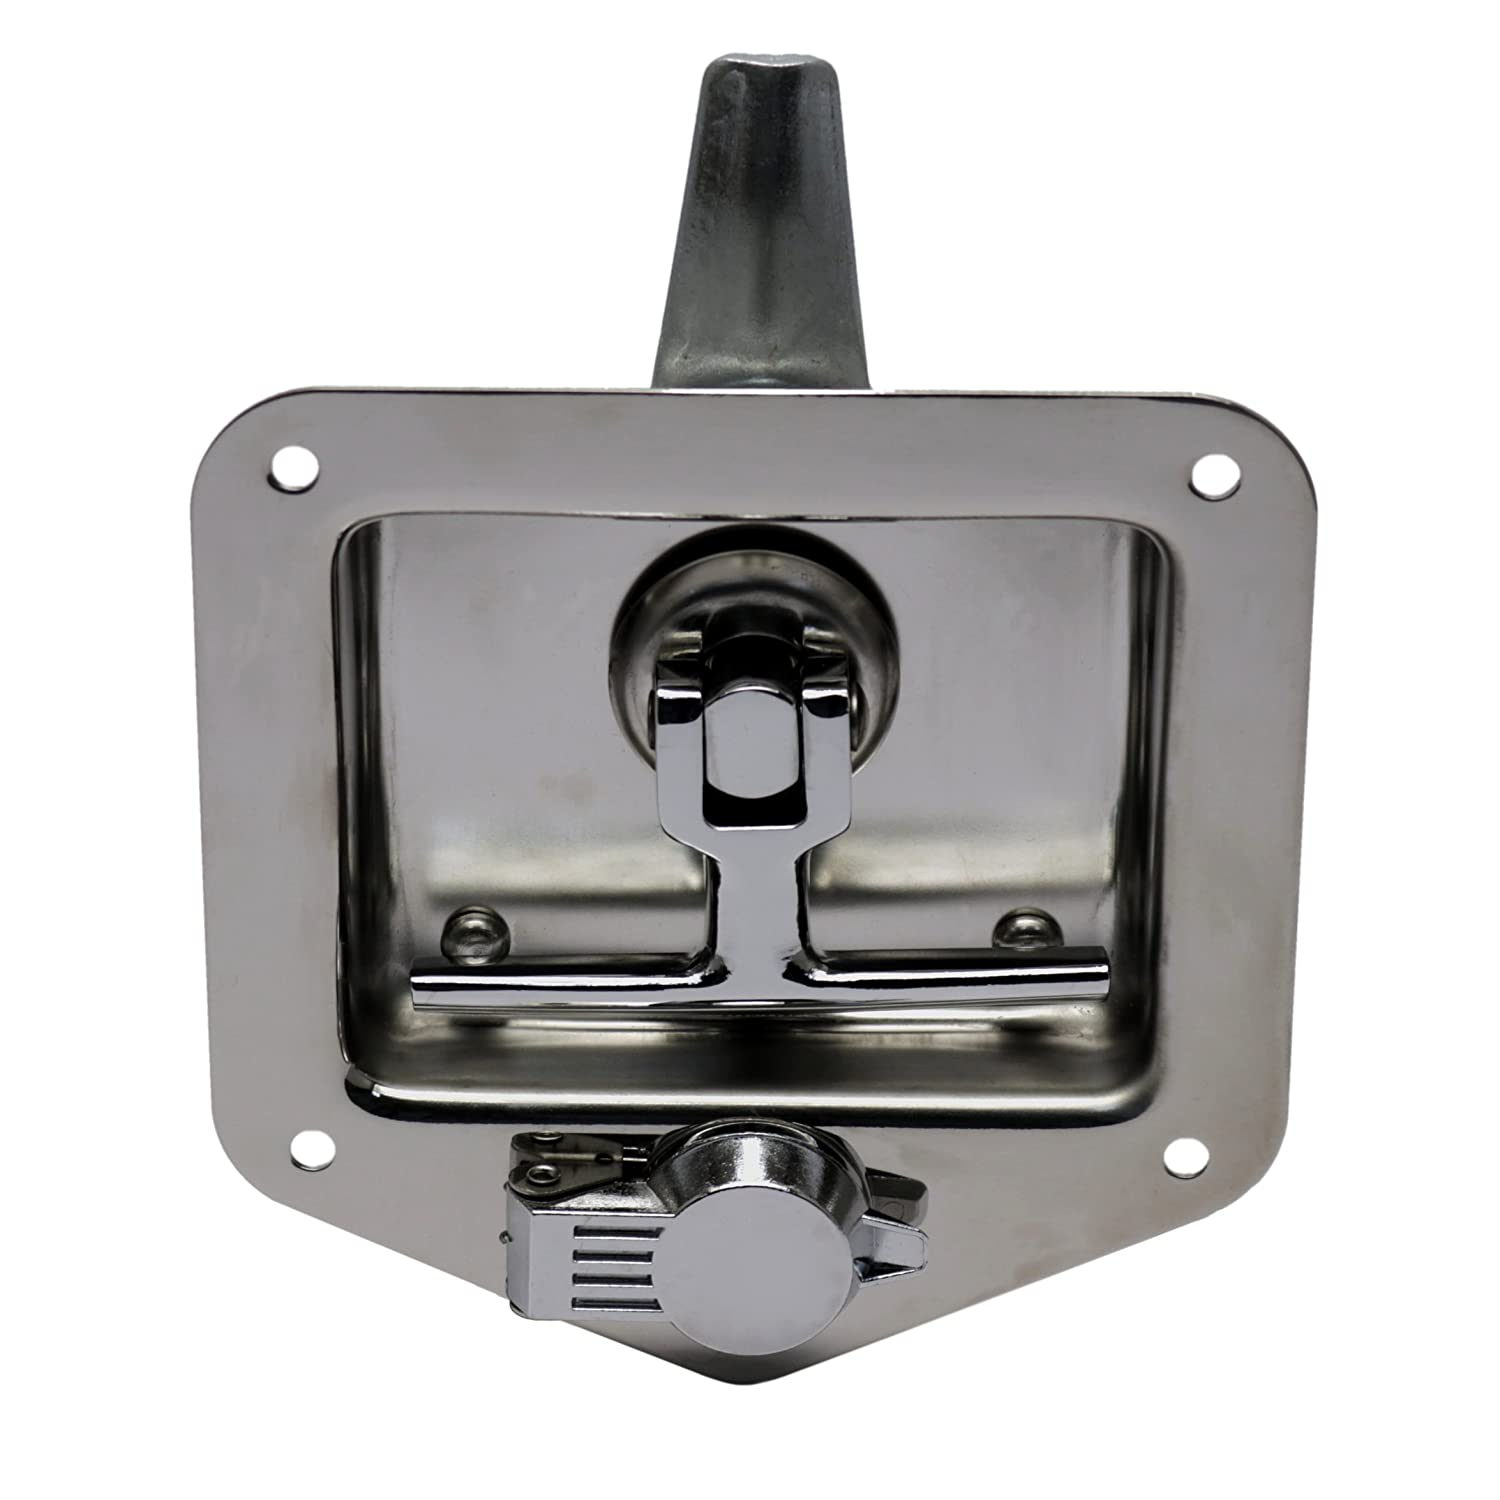 Folding T Handle Latch RV Camper Truck Trailer Toolbox TCH Hardware Stainless Steel T-Handle Cam Latch with Mounting Studs /& Lock Dust Cover